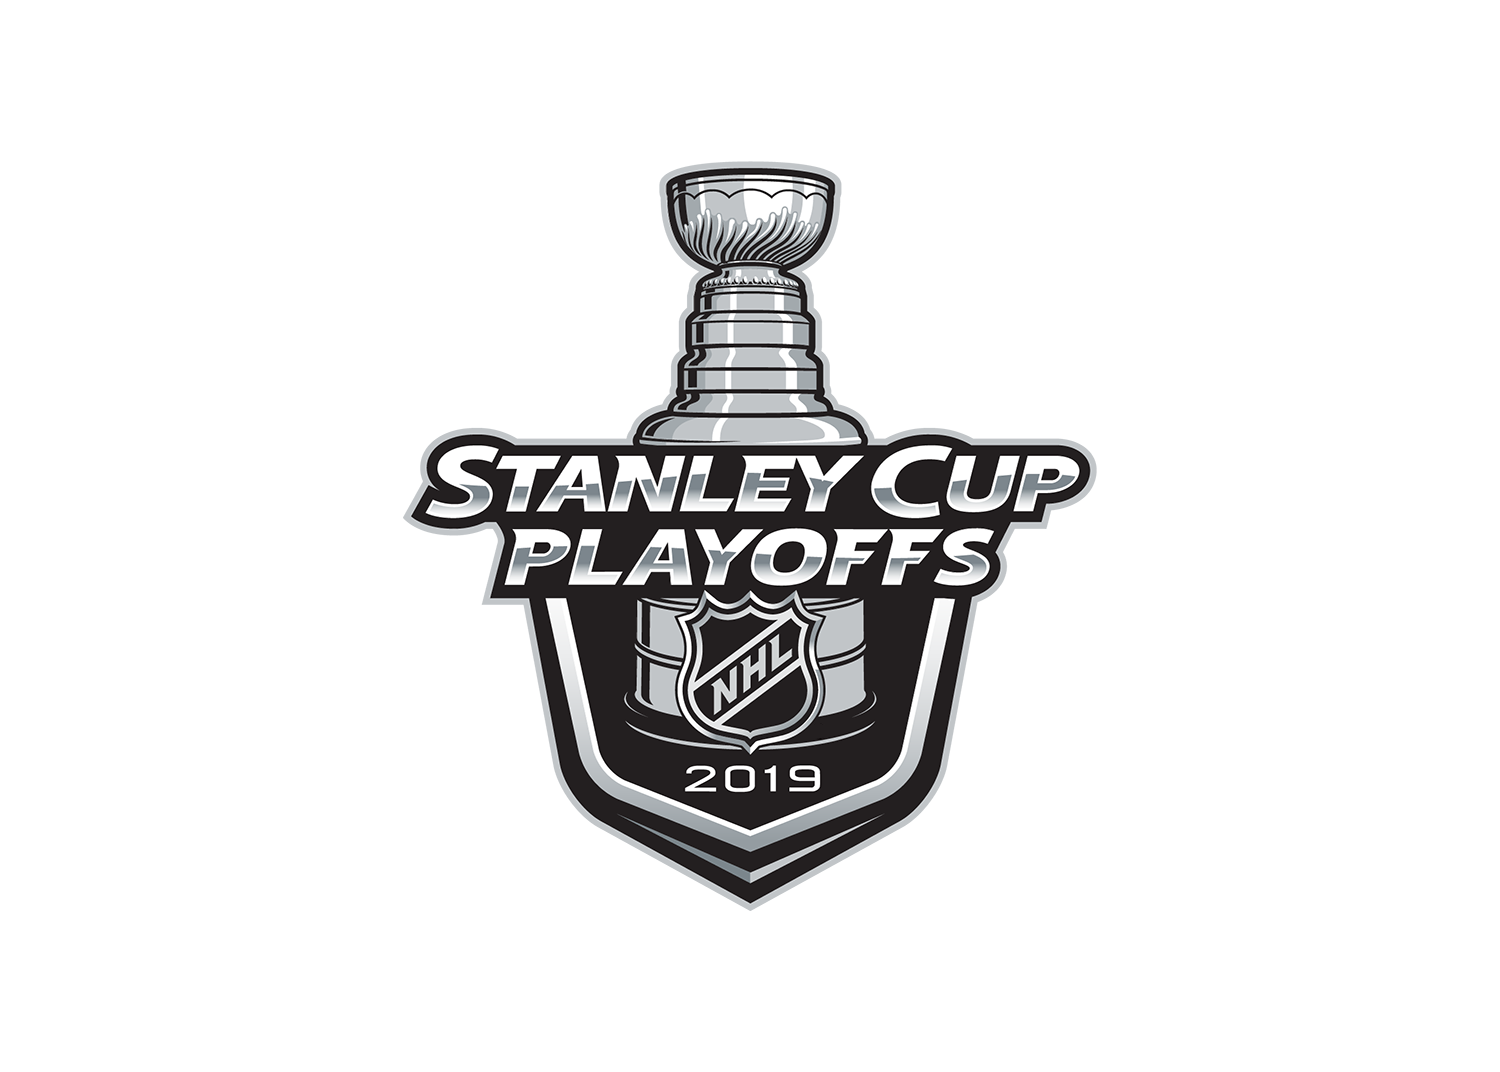 Stanley Cup Playoff Schedule 2019 Dates Times Sports Media Watch